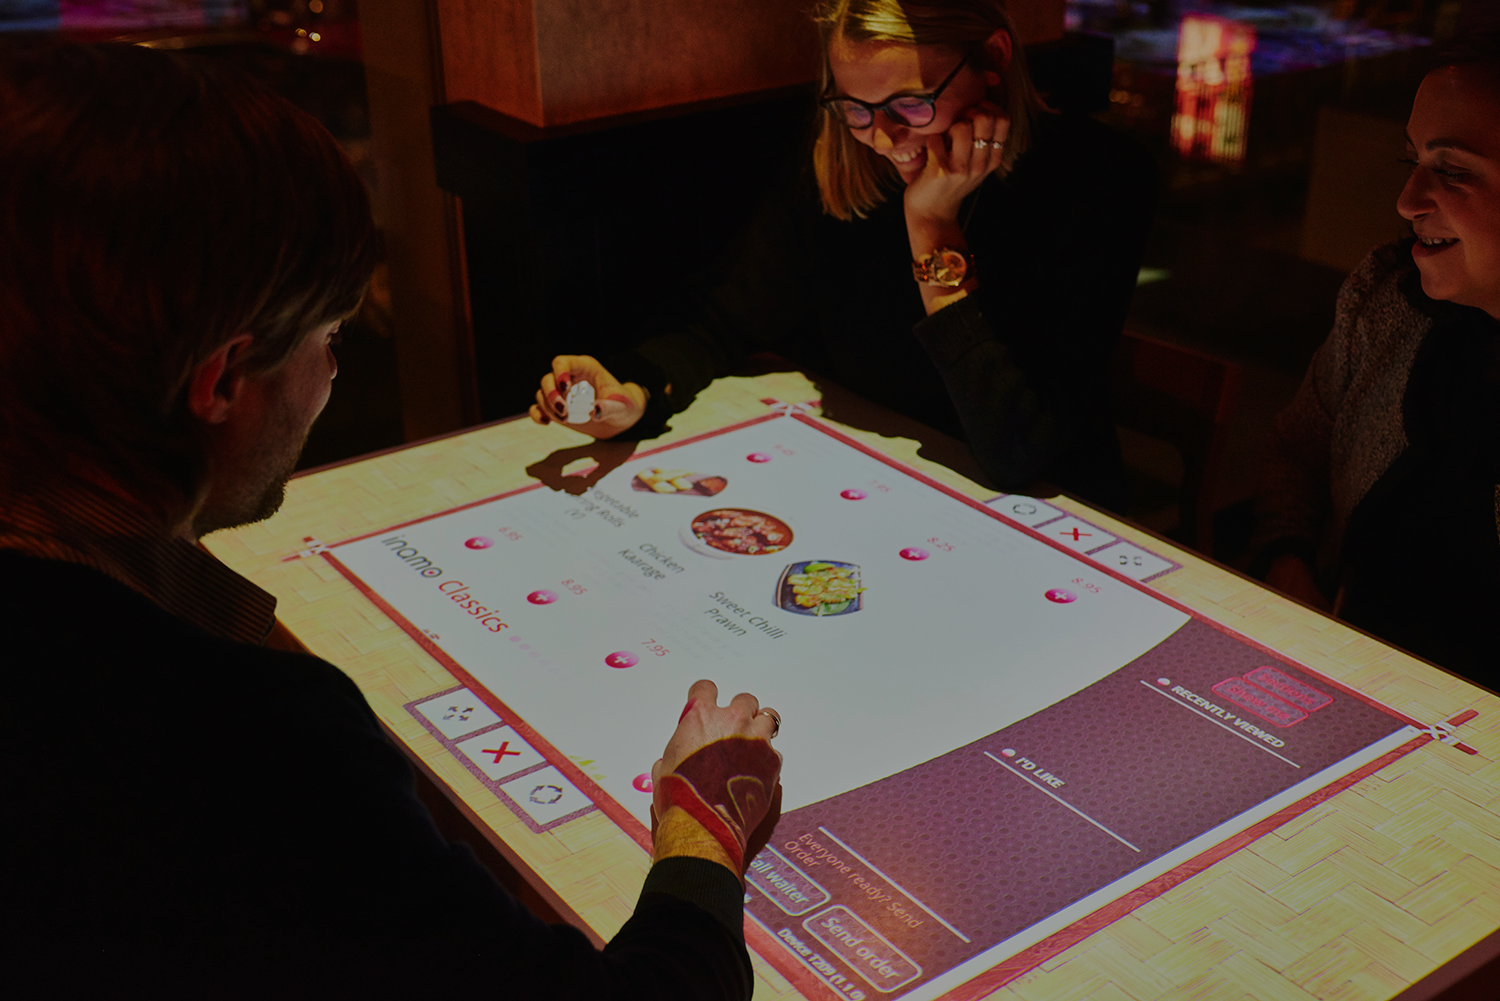 How Inamo Restaurant Has Embraced Interactive Dining The Rail - Restaurant table games